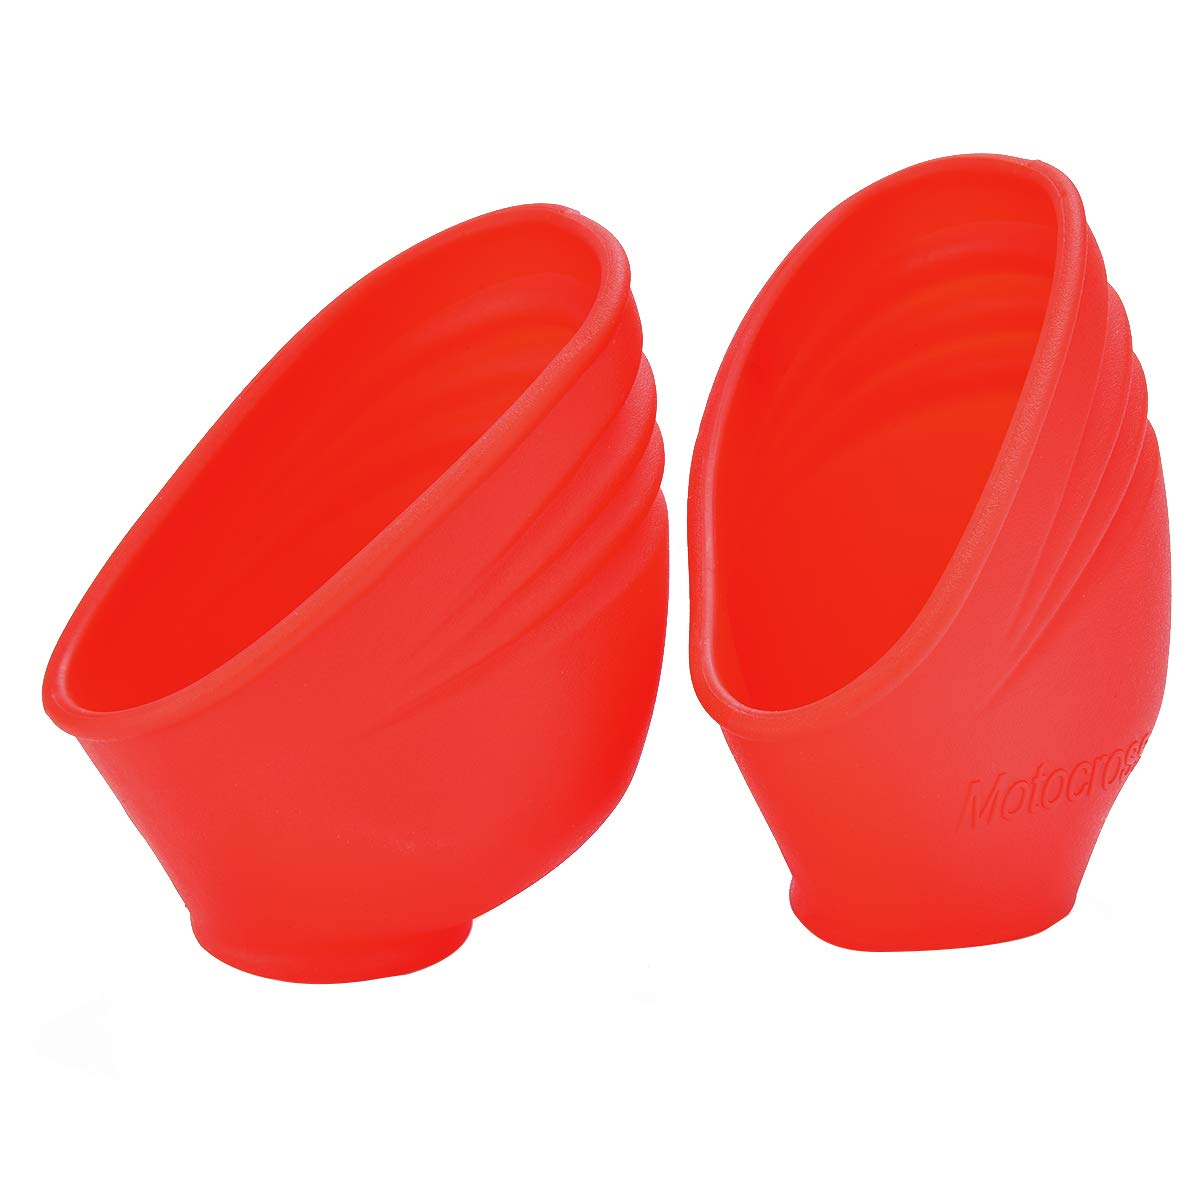 Orange DirtBikeClub PRO CAKEN Footpeg Protection Cover Foot Peg Guard Protector for CRF450X CRF250X CRF250R